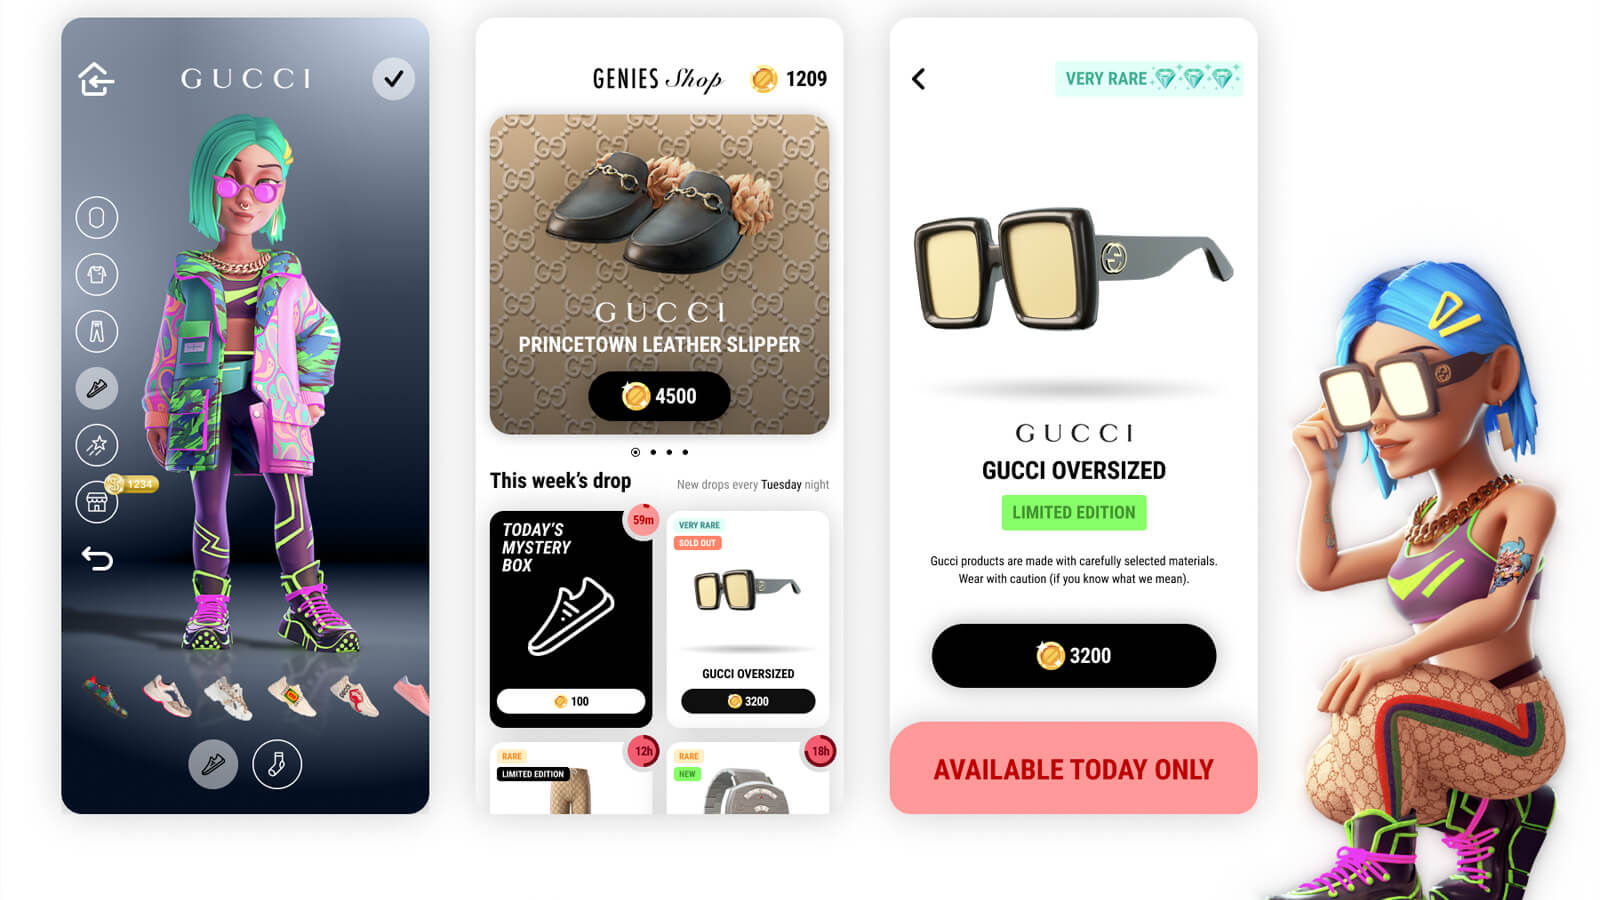 Gucci clothing can be added to Genesis brand avatars